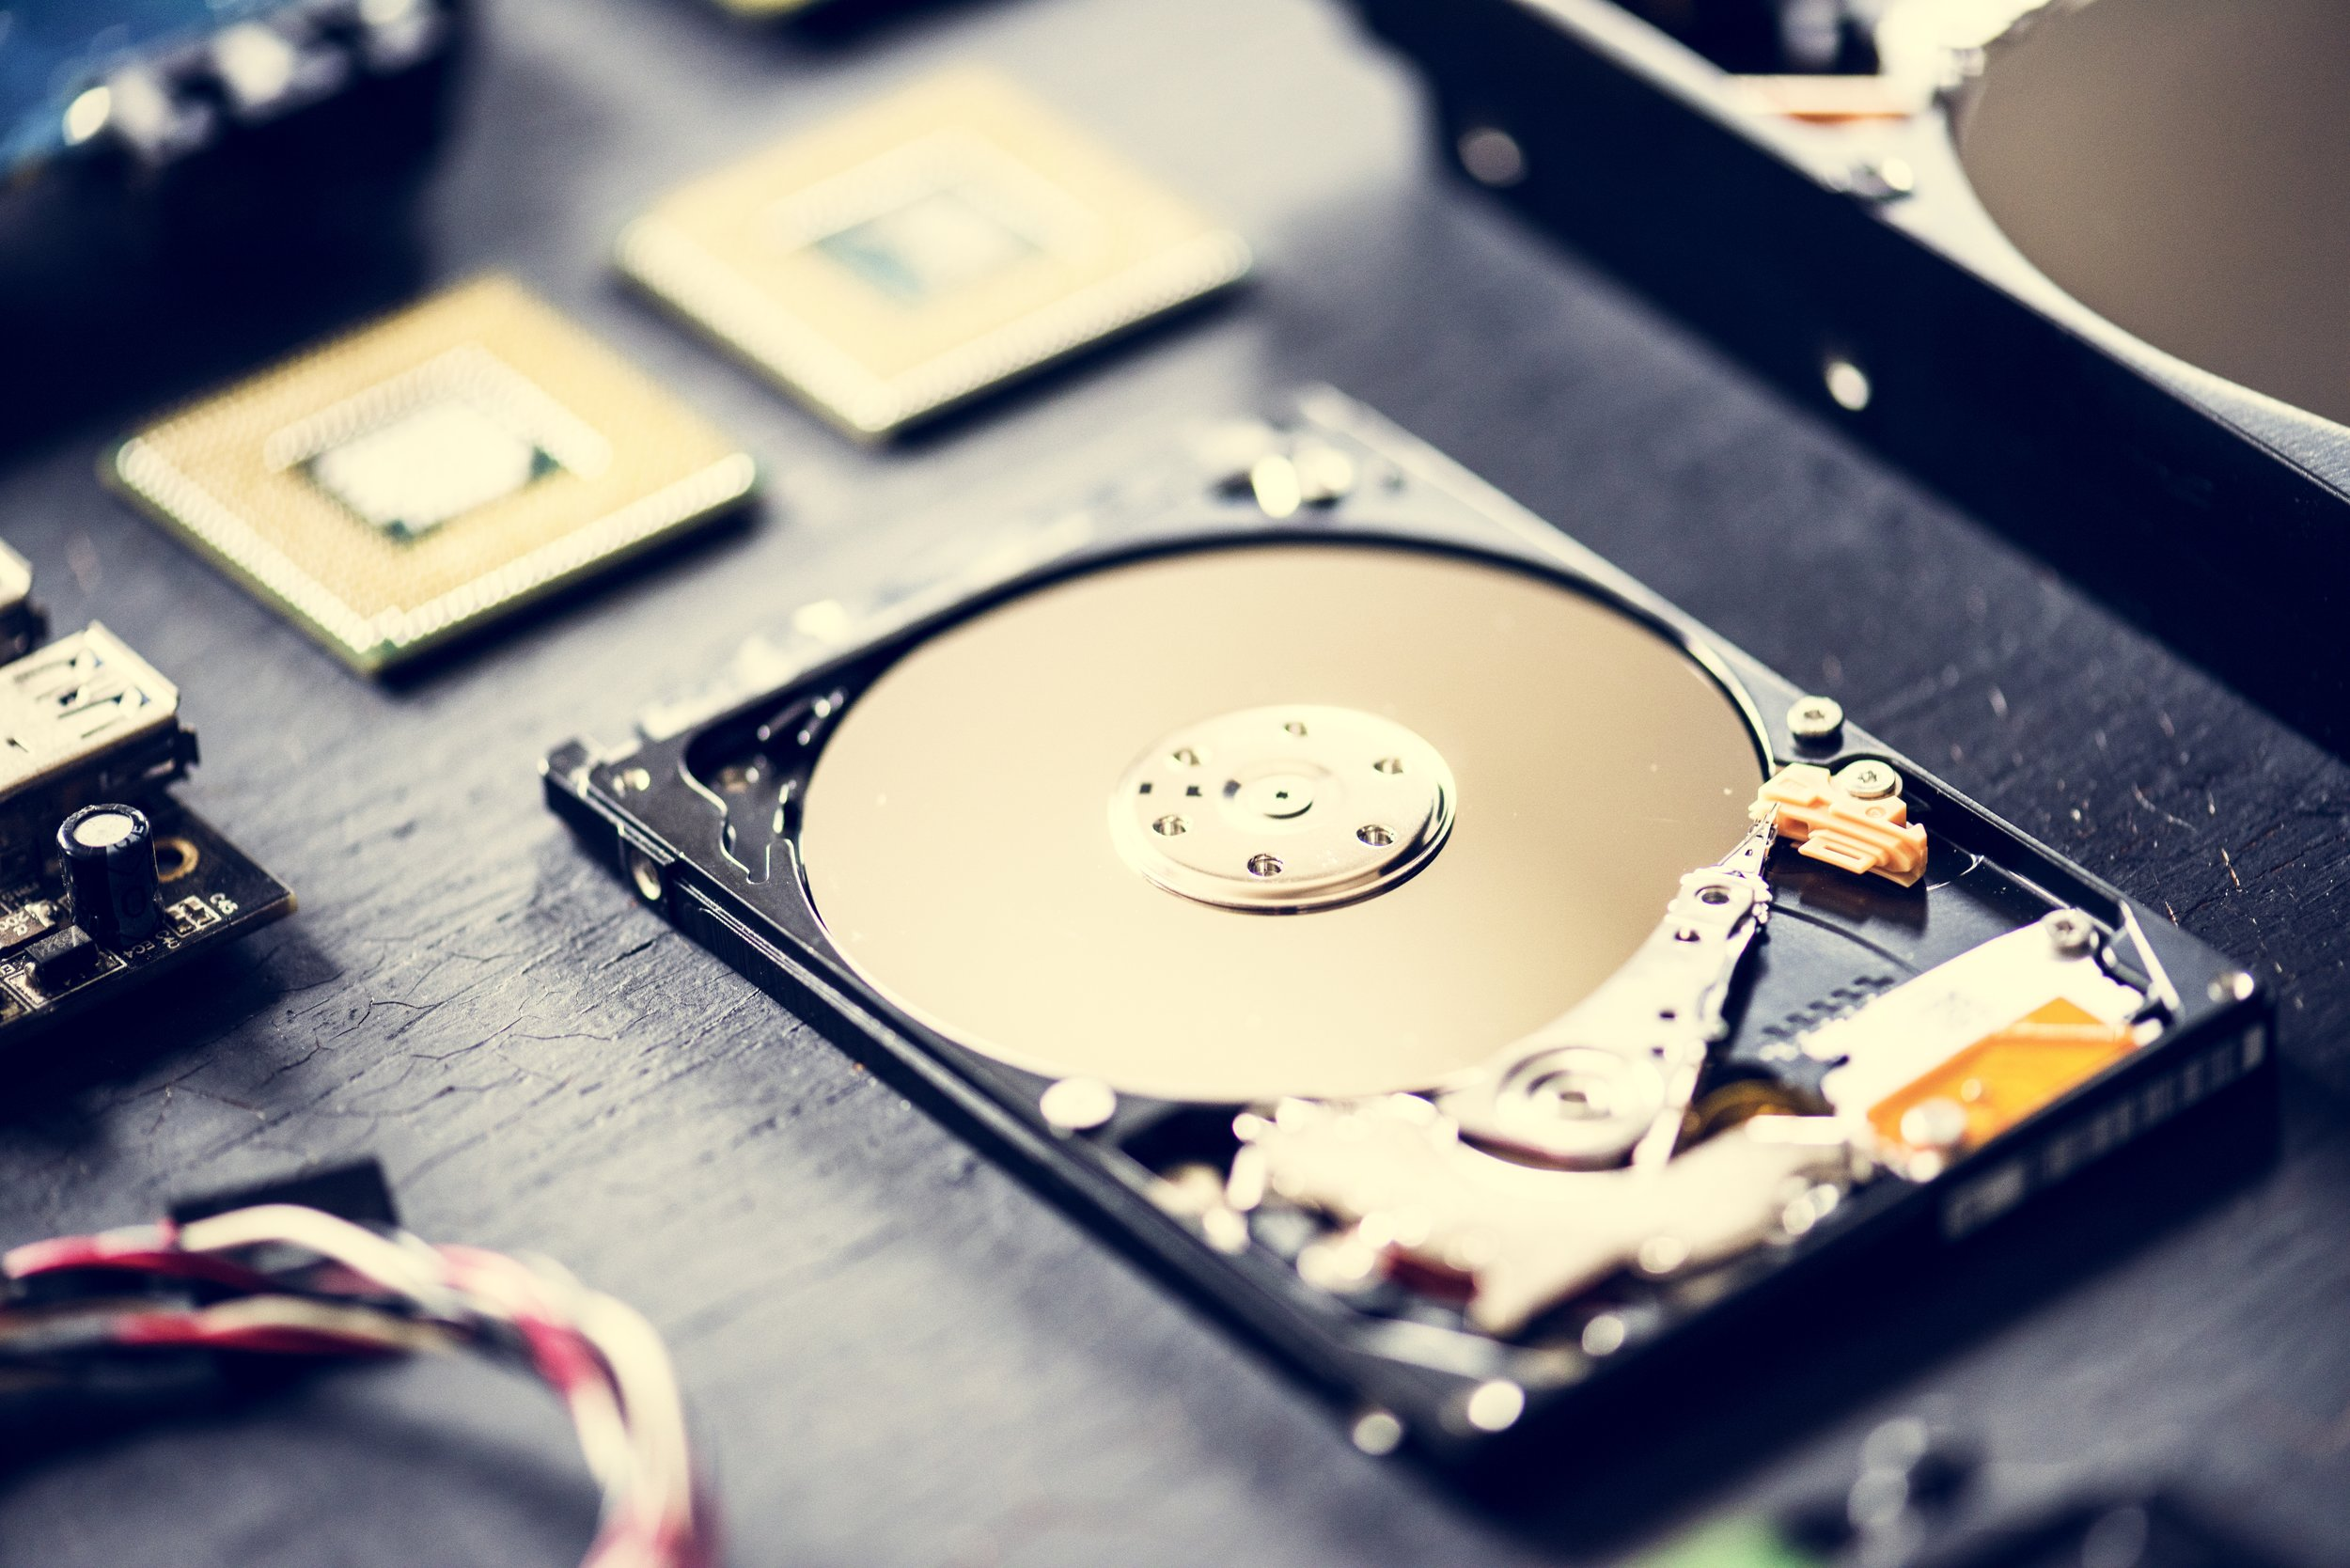 Data Recovery - In the digital age, data is our most precious asset, and proper and regular backups are absolutely essential, but things sometimes happen. Whether you have a desktop, laptop, tablet, phone, SD card, or USB drive, I can help you recover your lost/damaged/deleted data/files.*